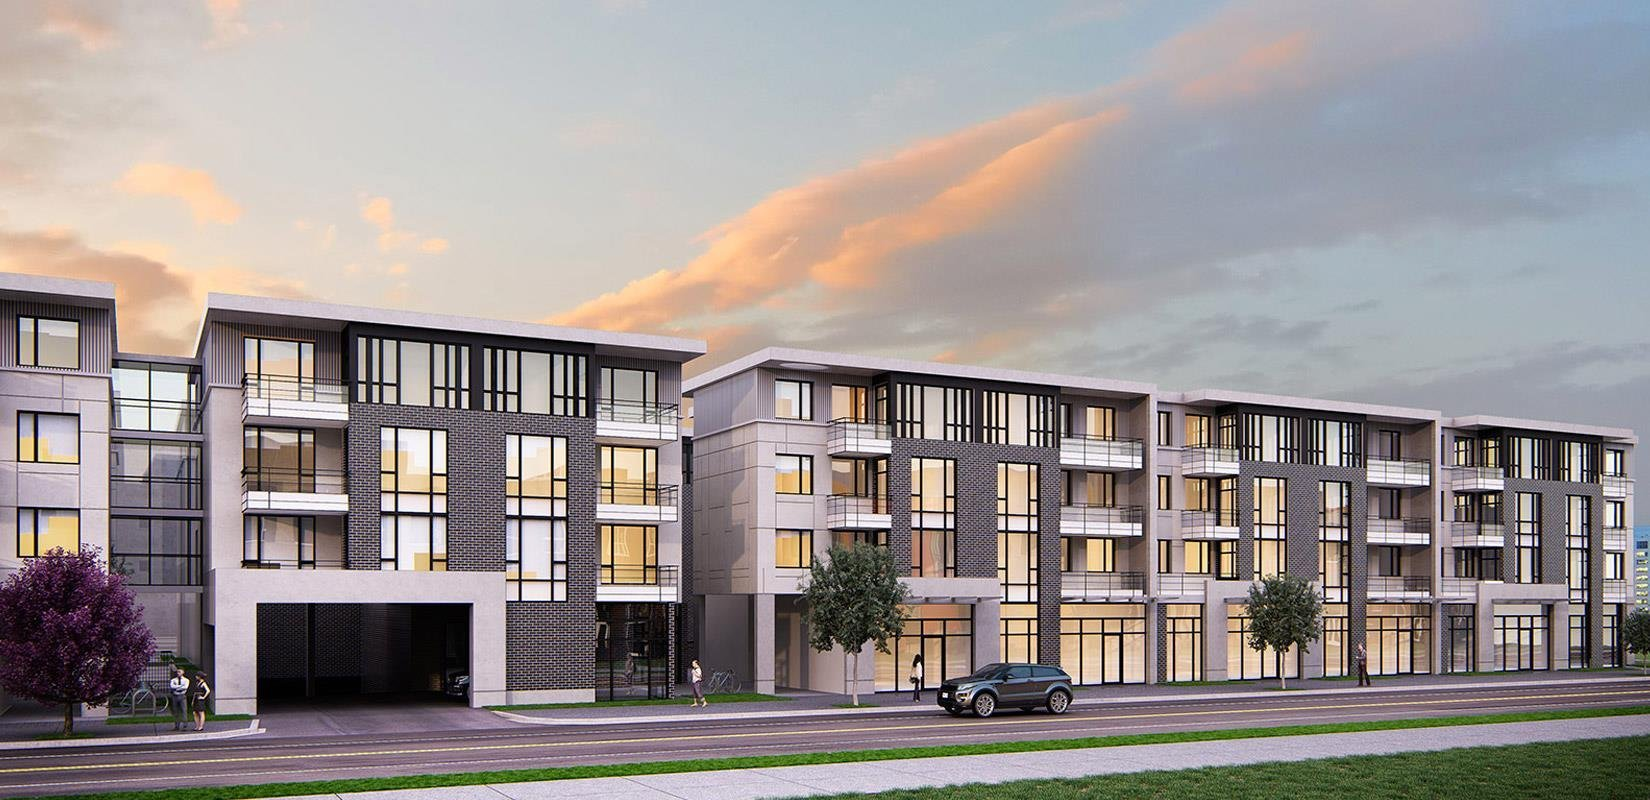 Eternity - 5309 Lane Street - Developer Photo!